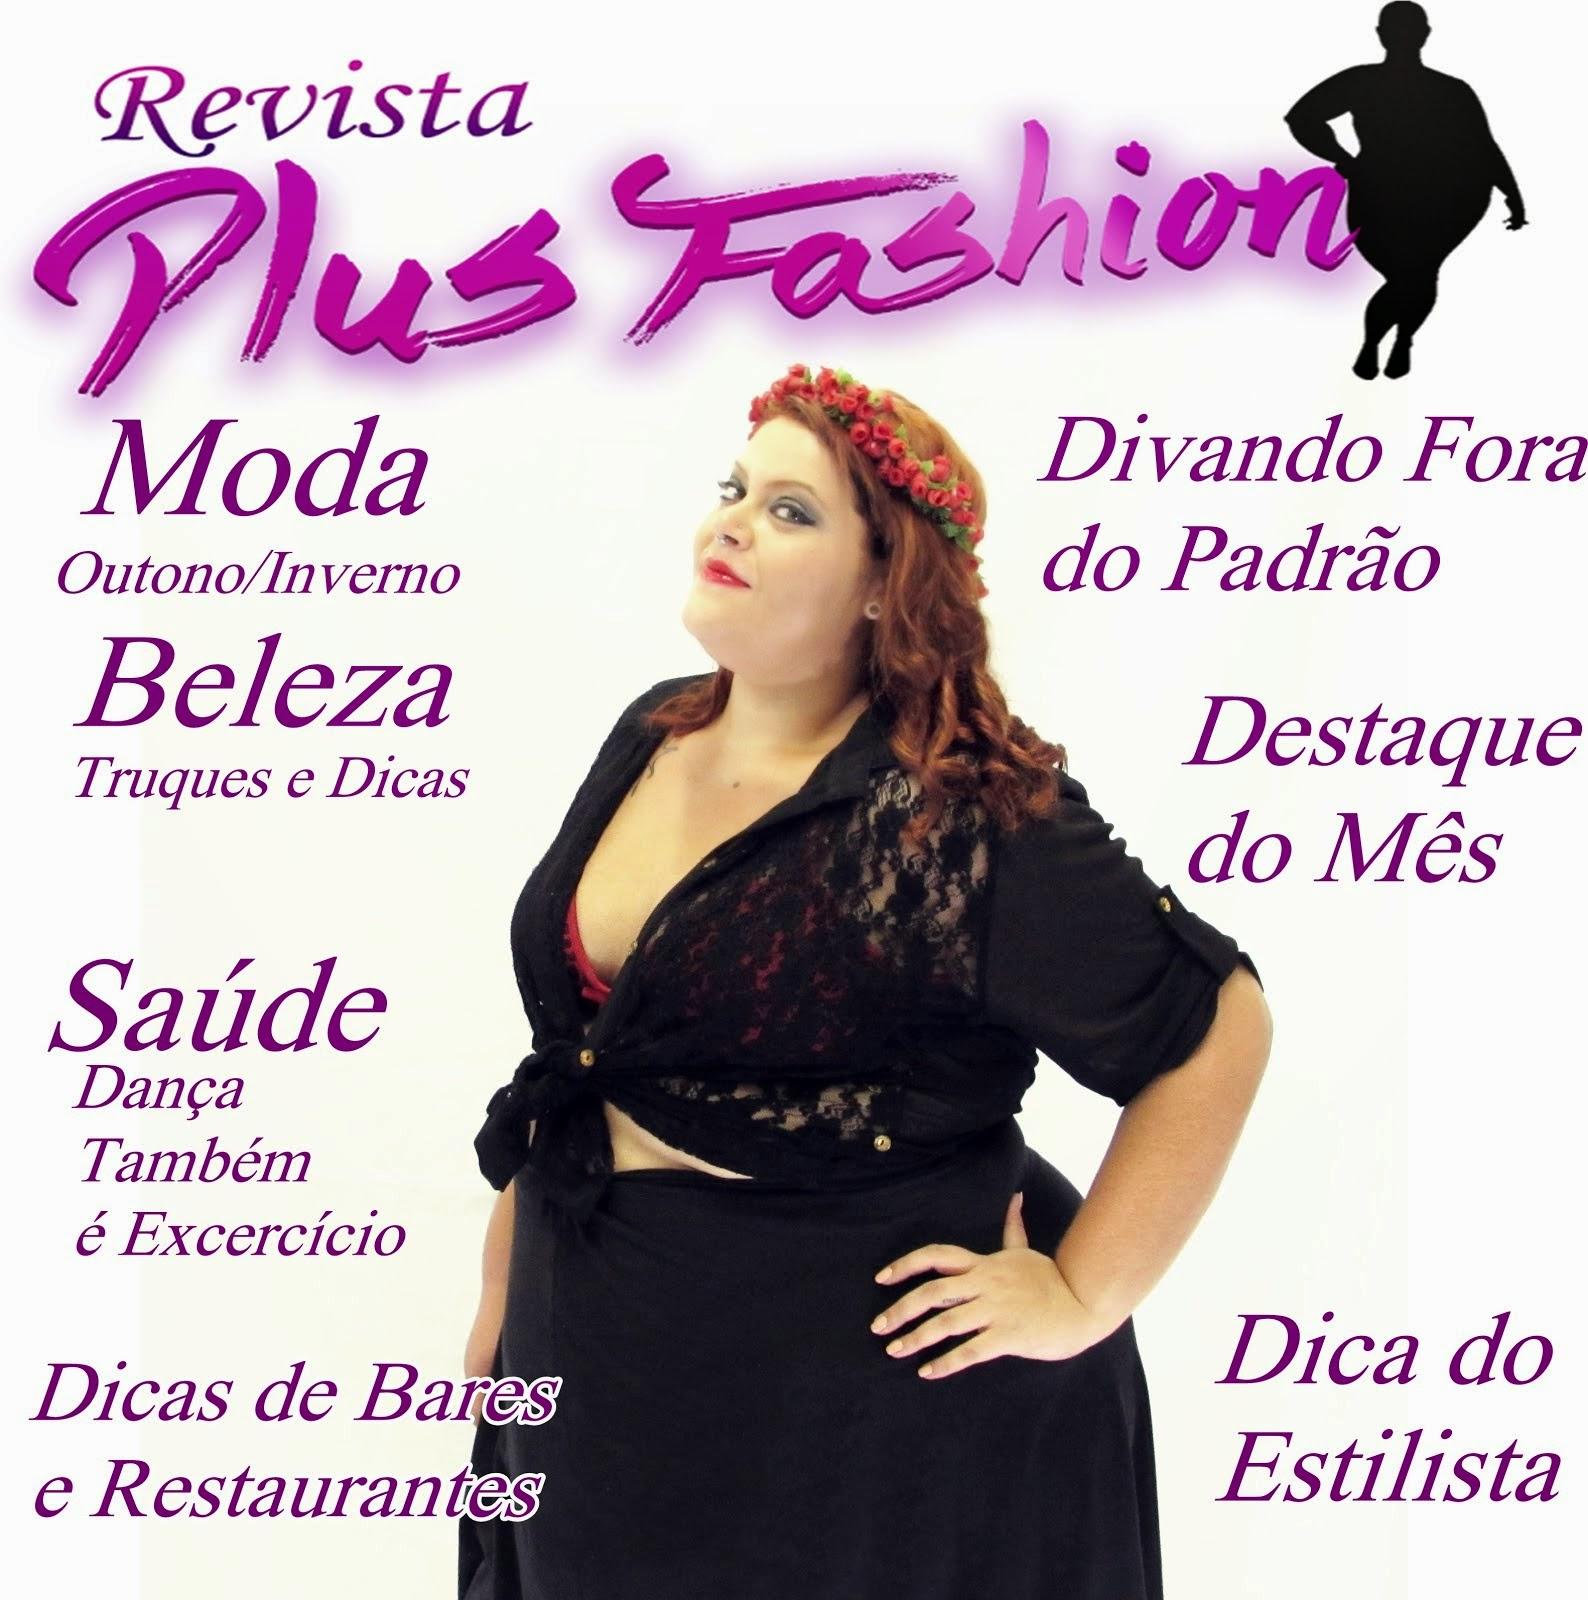 Revista Plus Fashion